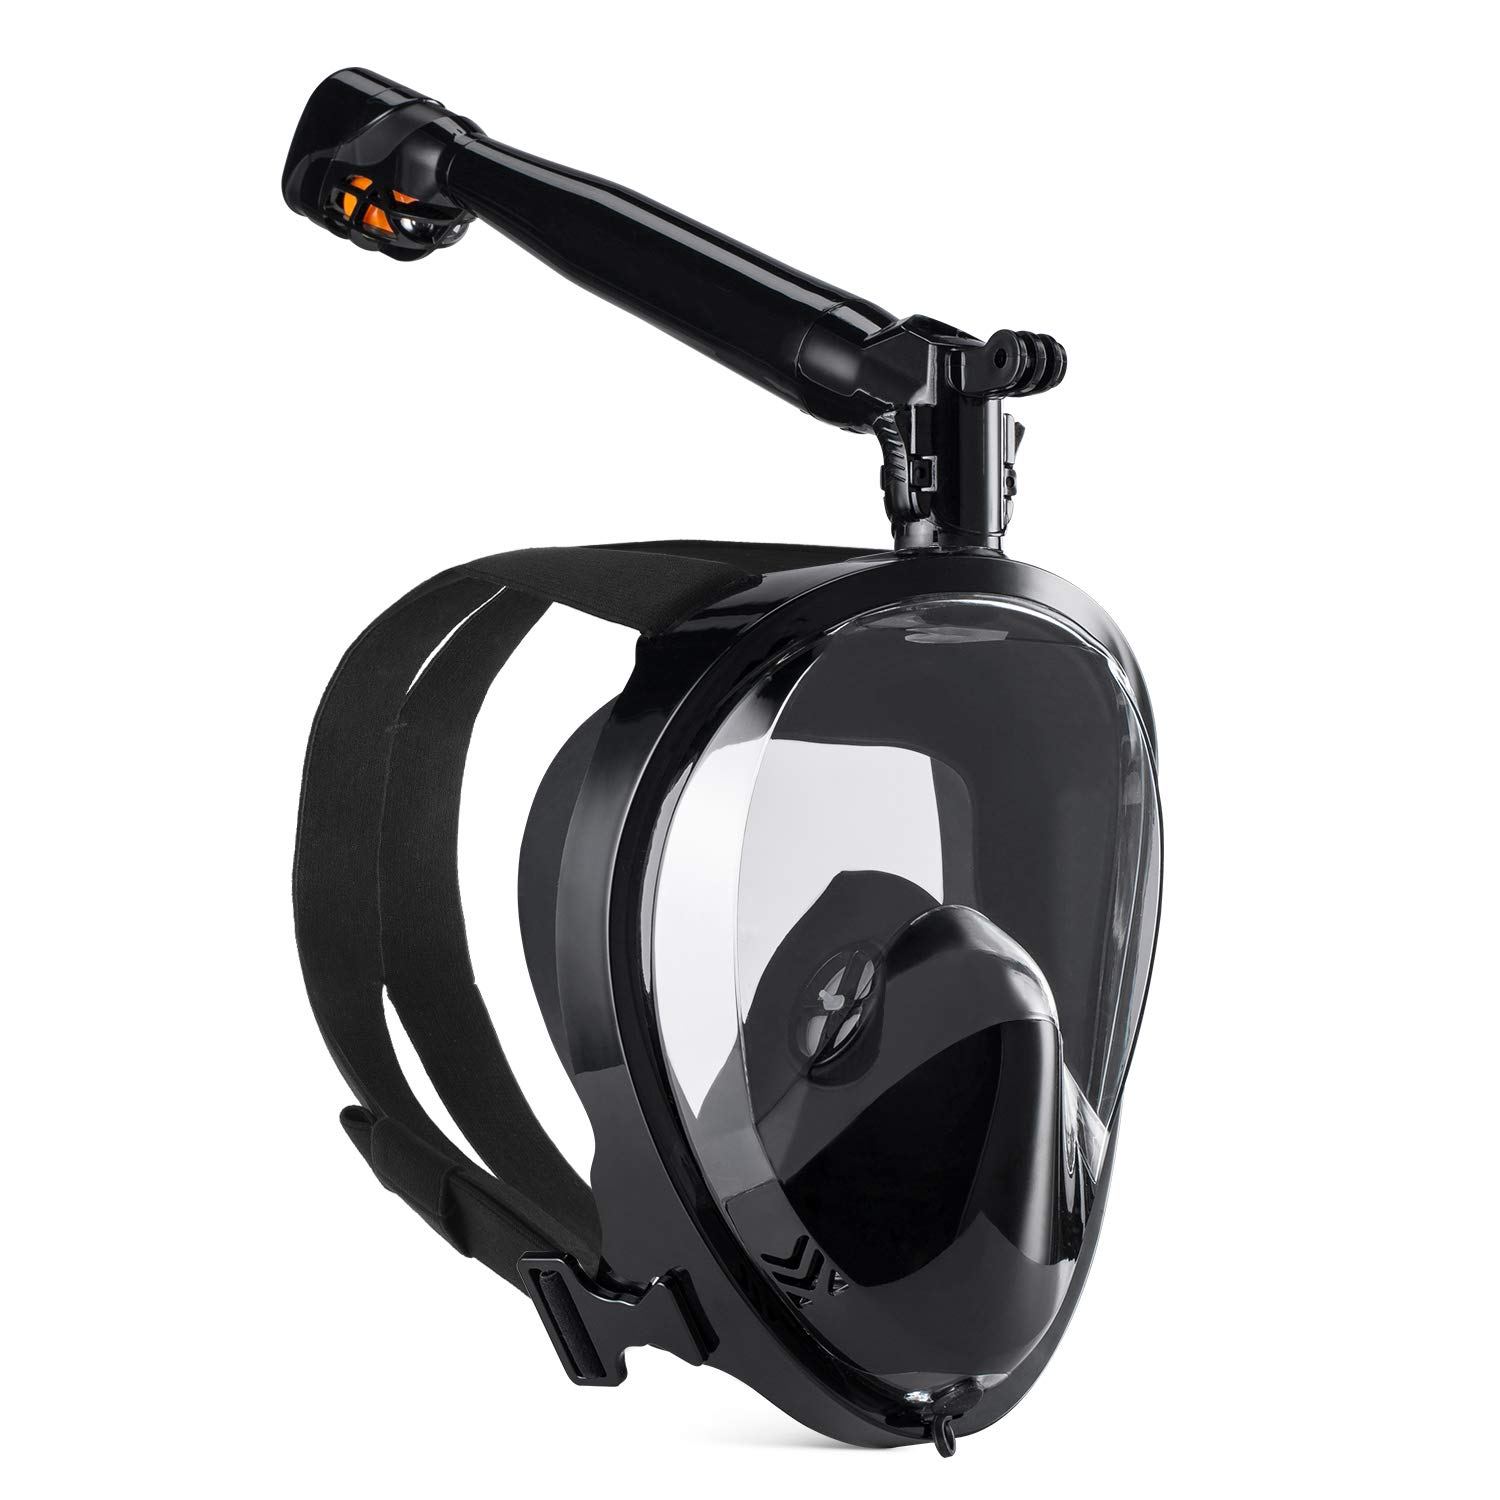 GroHoze Full Face GoPro Compatible Snorkel Mask with 180° Panoramic Viewing and Advanced Breathing System for Snorkeling and Diving - Black, L/XL by GroHoze